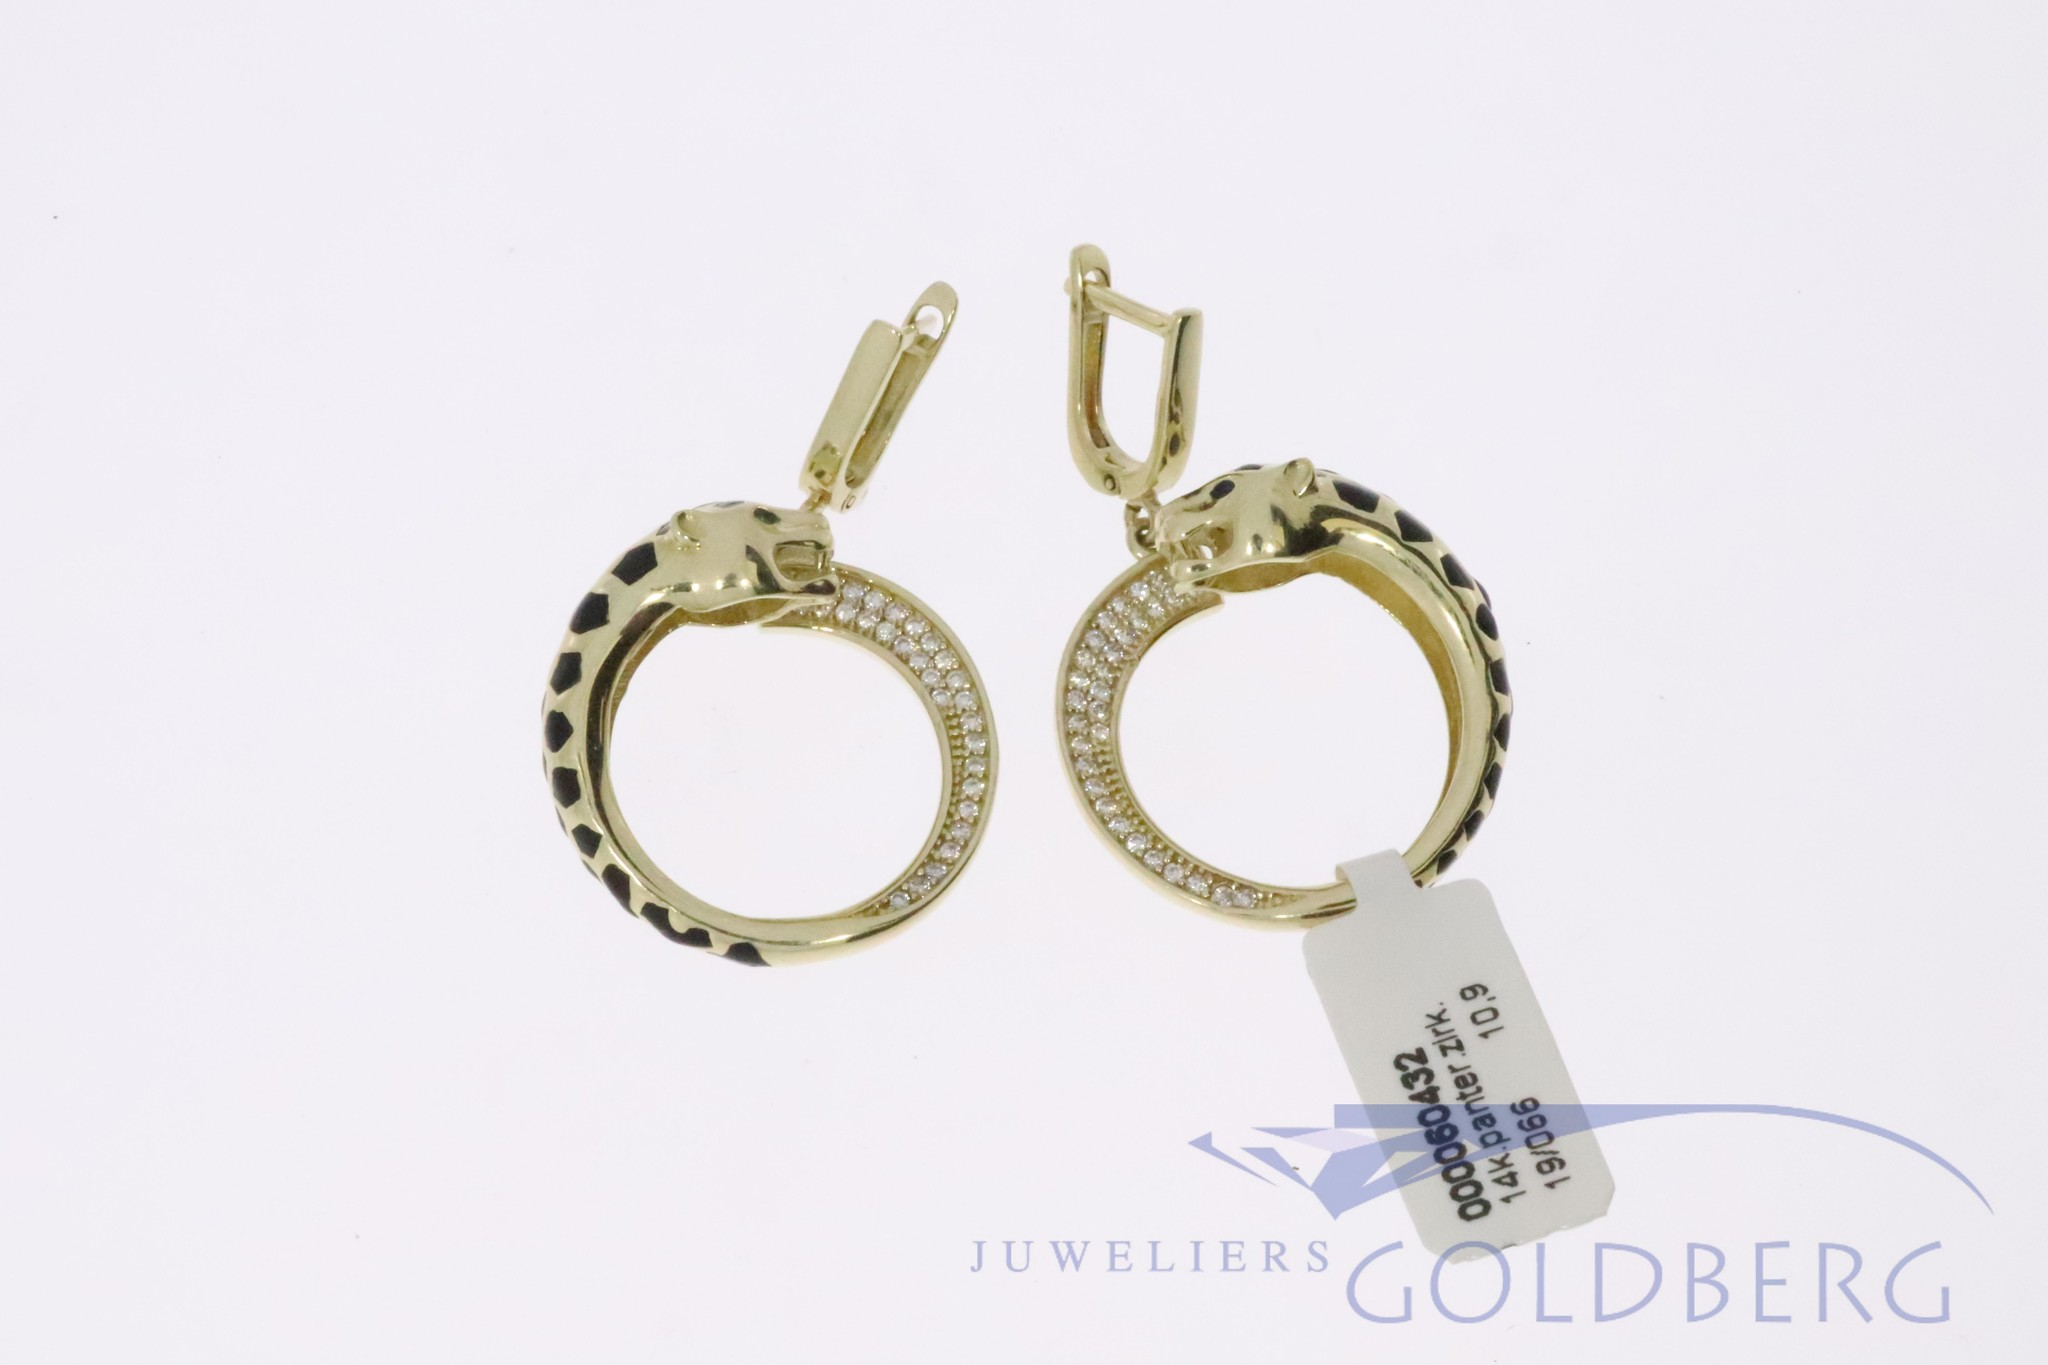 beautiful 14 carat gold panther earrings with zirconia